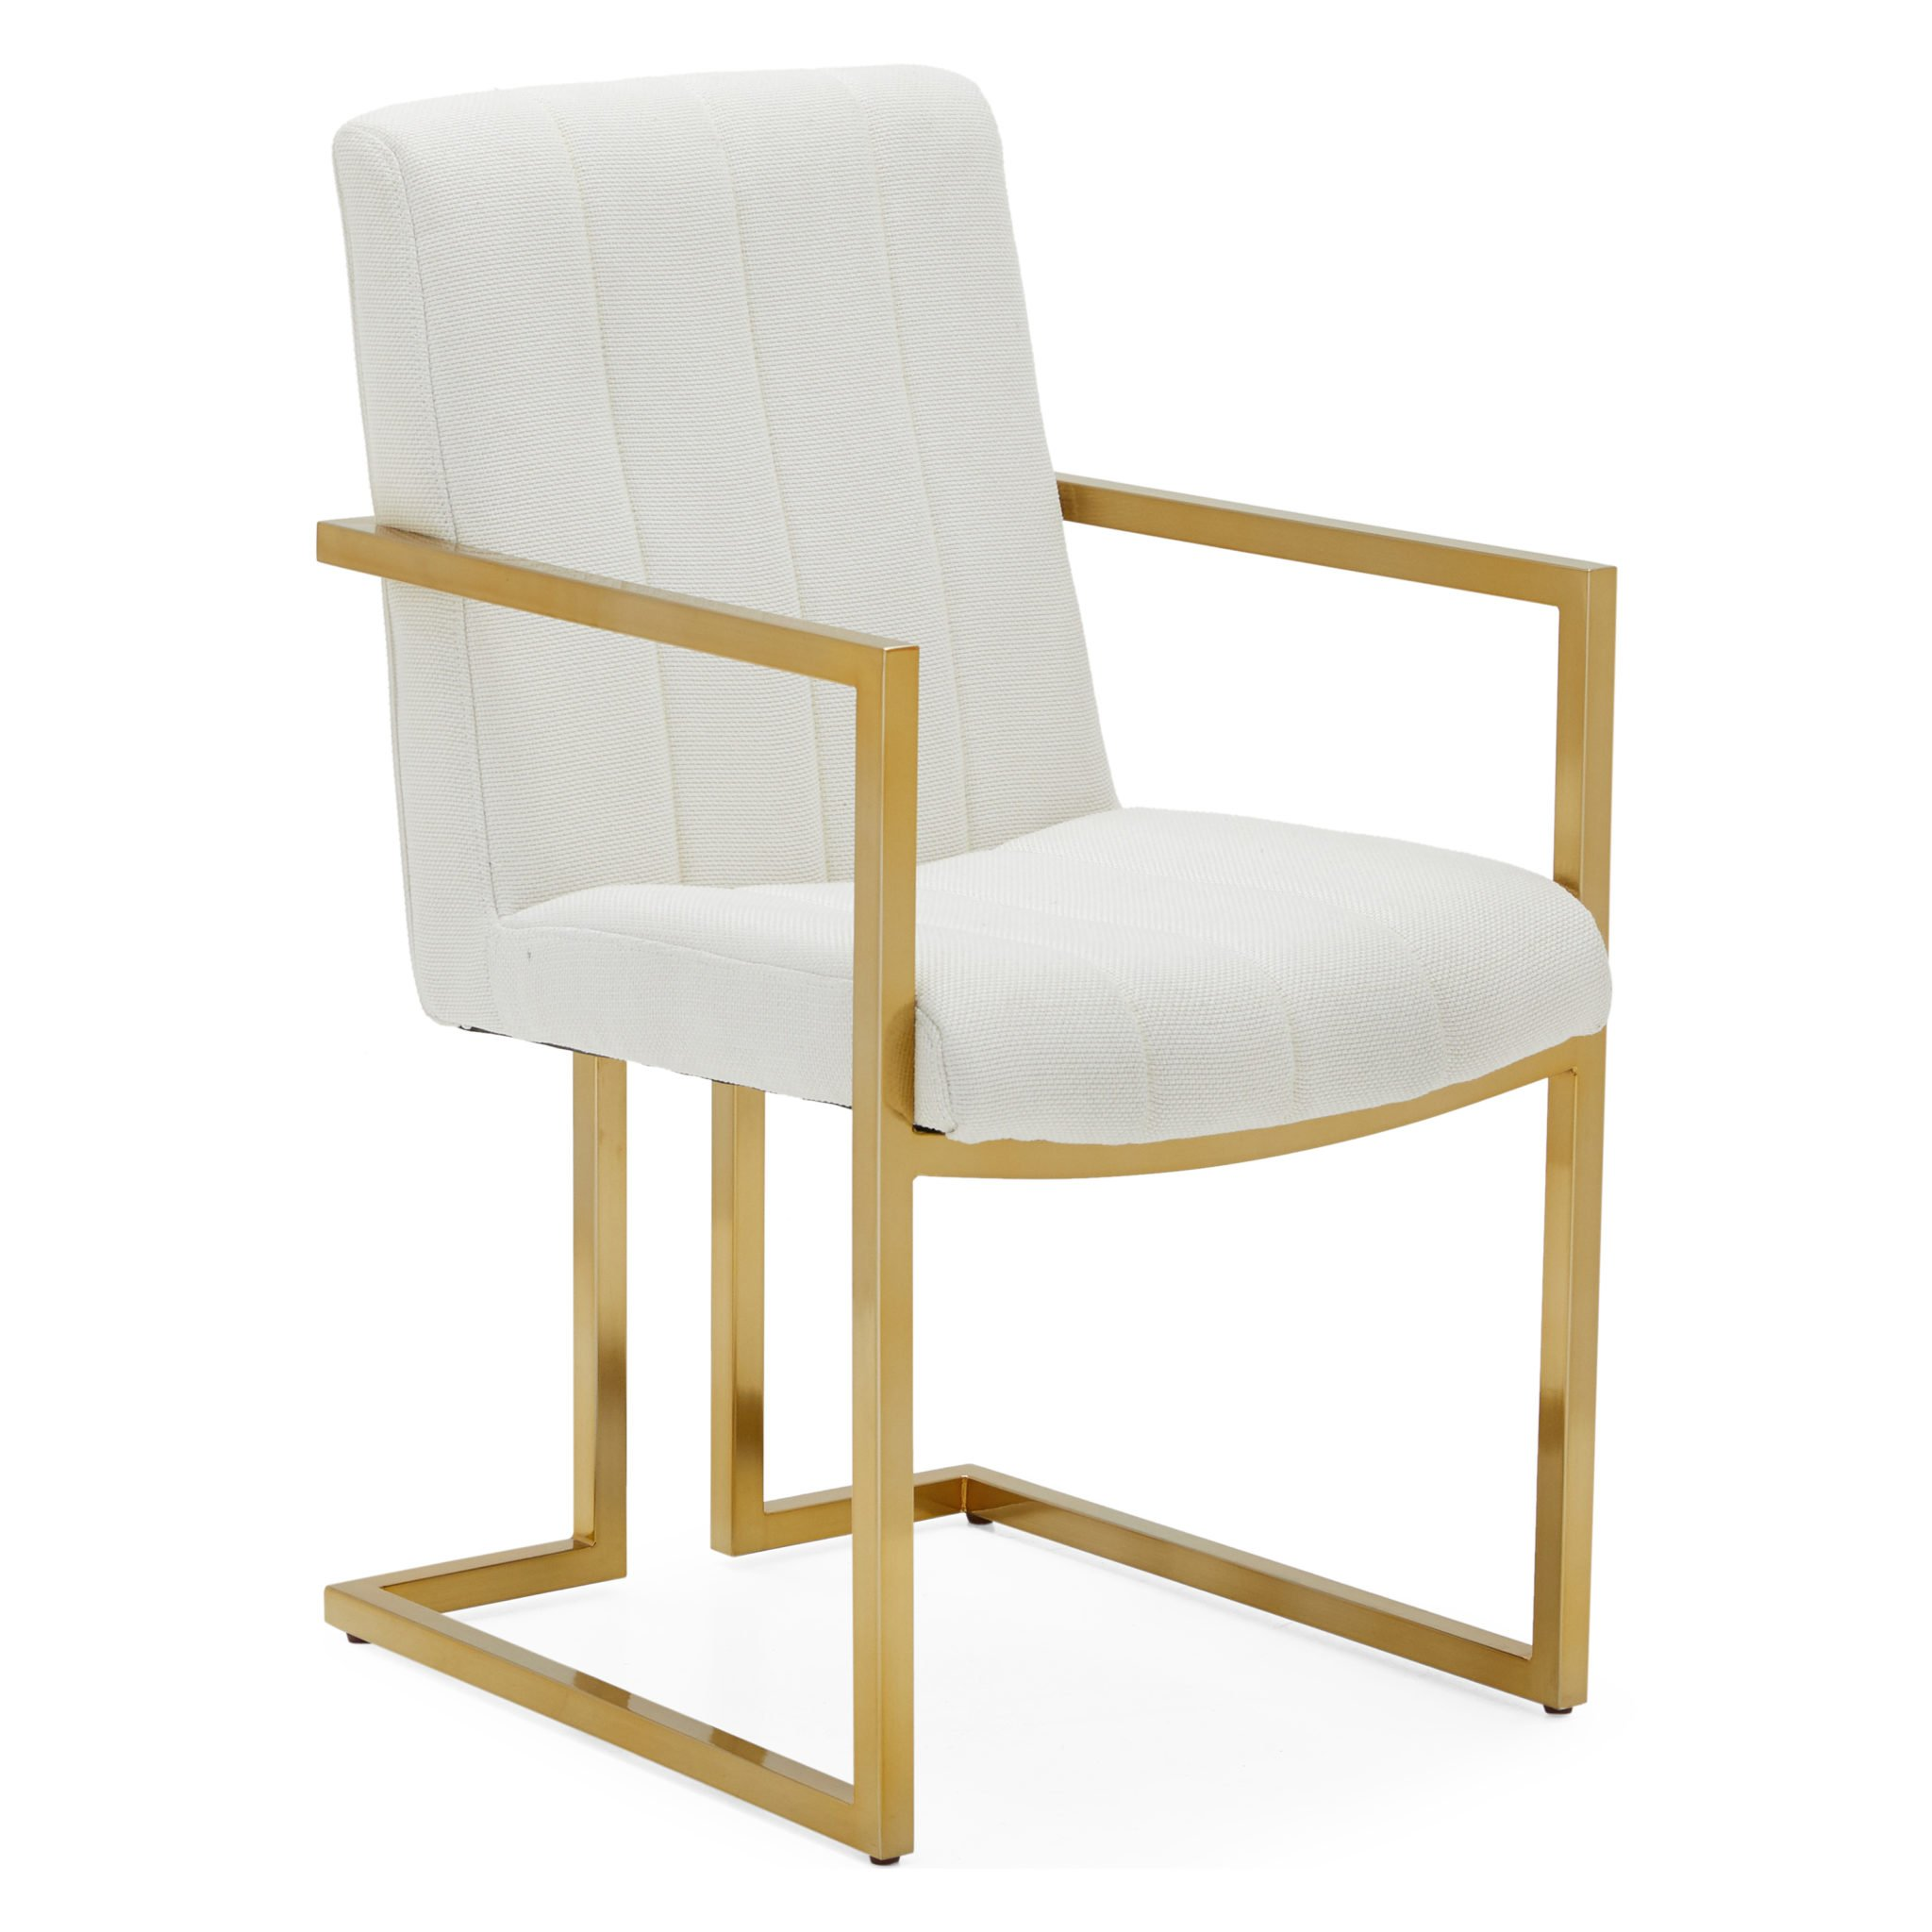 gold and white vanity chair